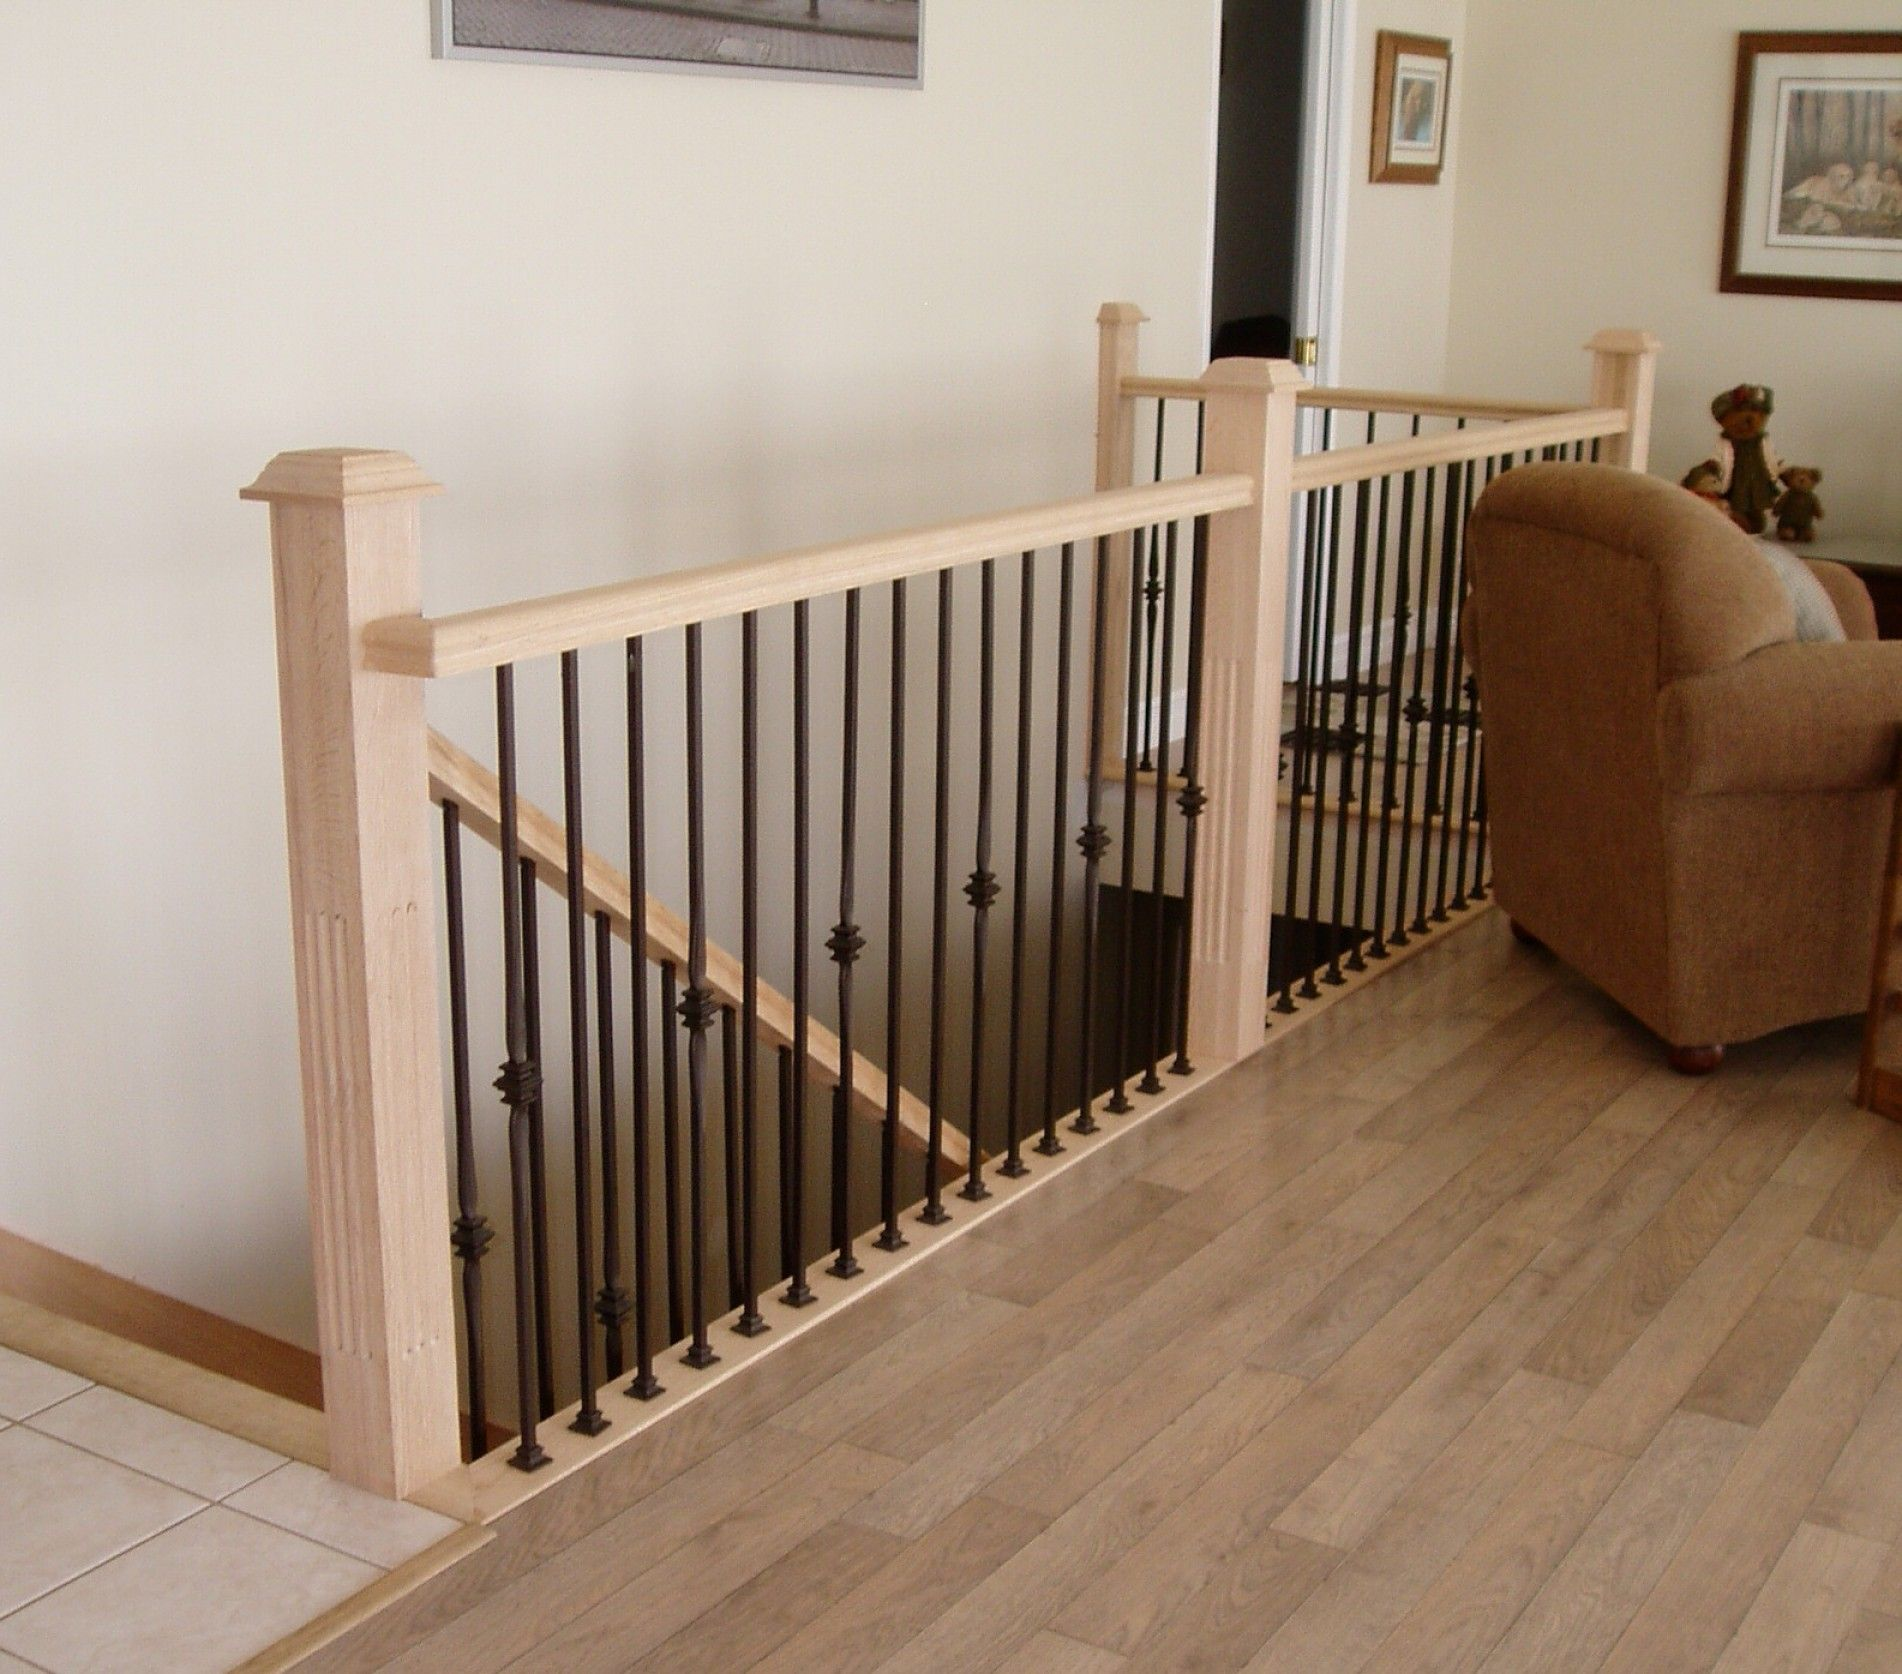 interior-stair-railing-kits-inspiration-and-design-wood ...